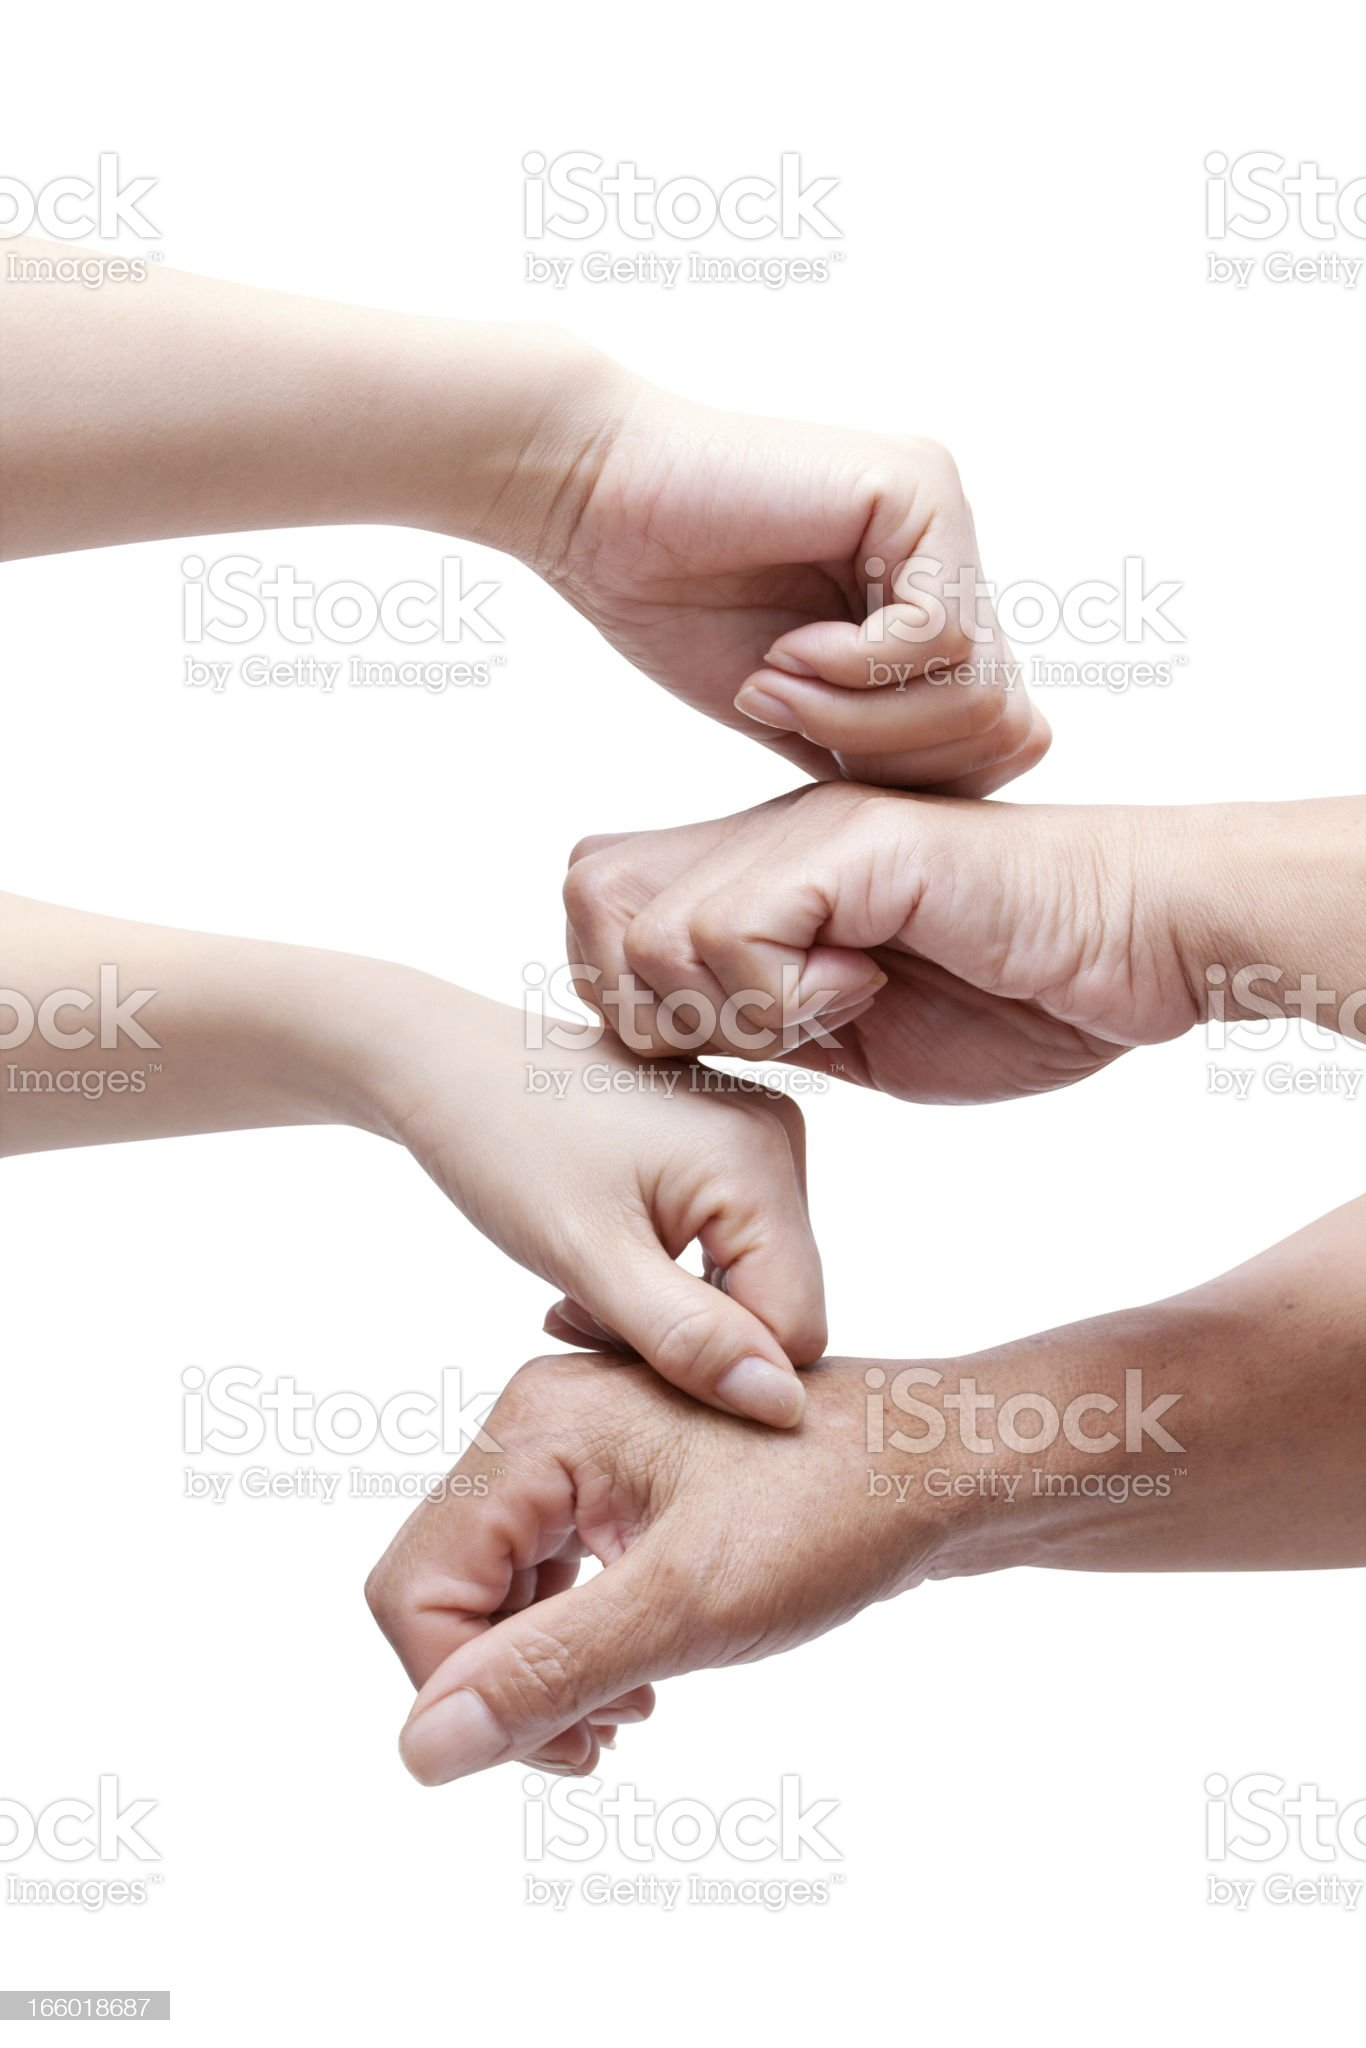 Teamwork (Clipping Path!) with hands  isolated on white background royalty-free stock photo